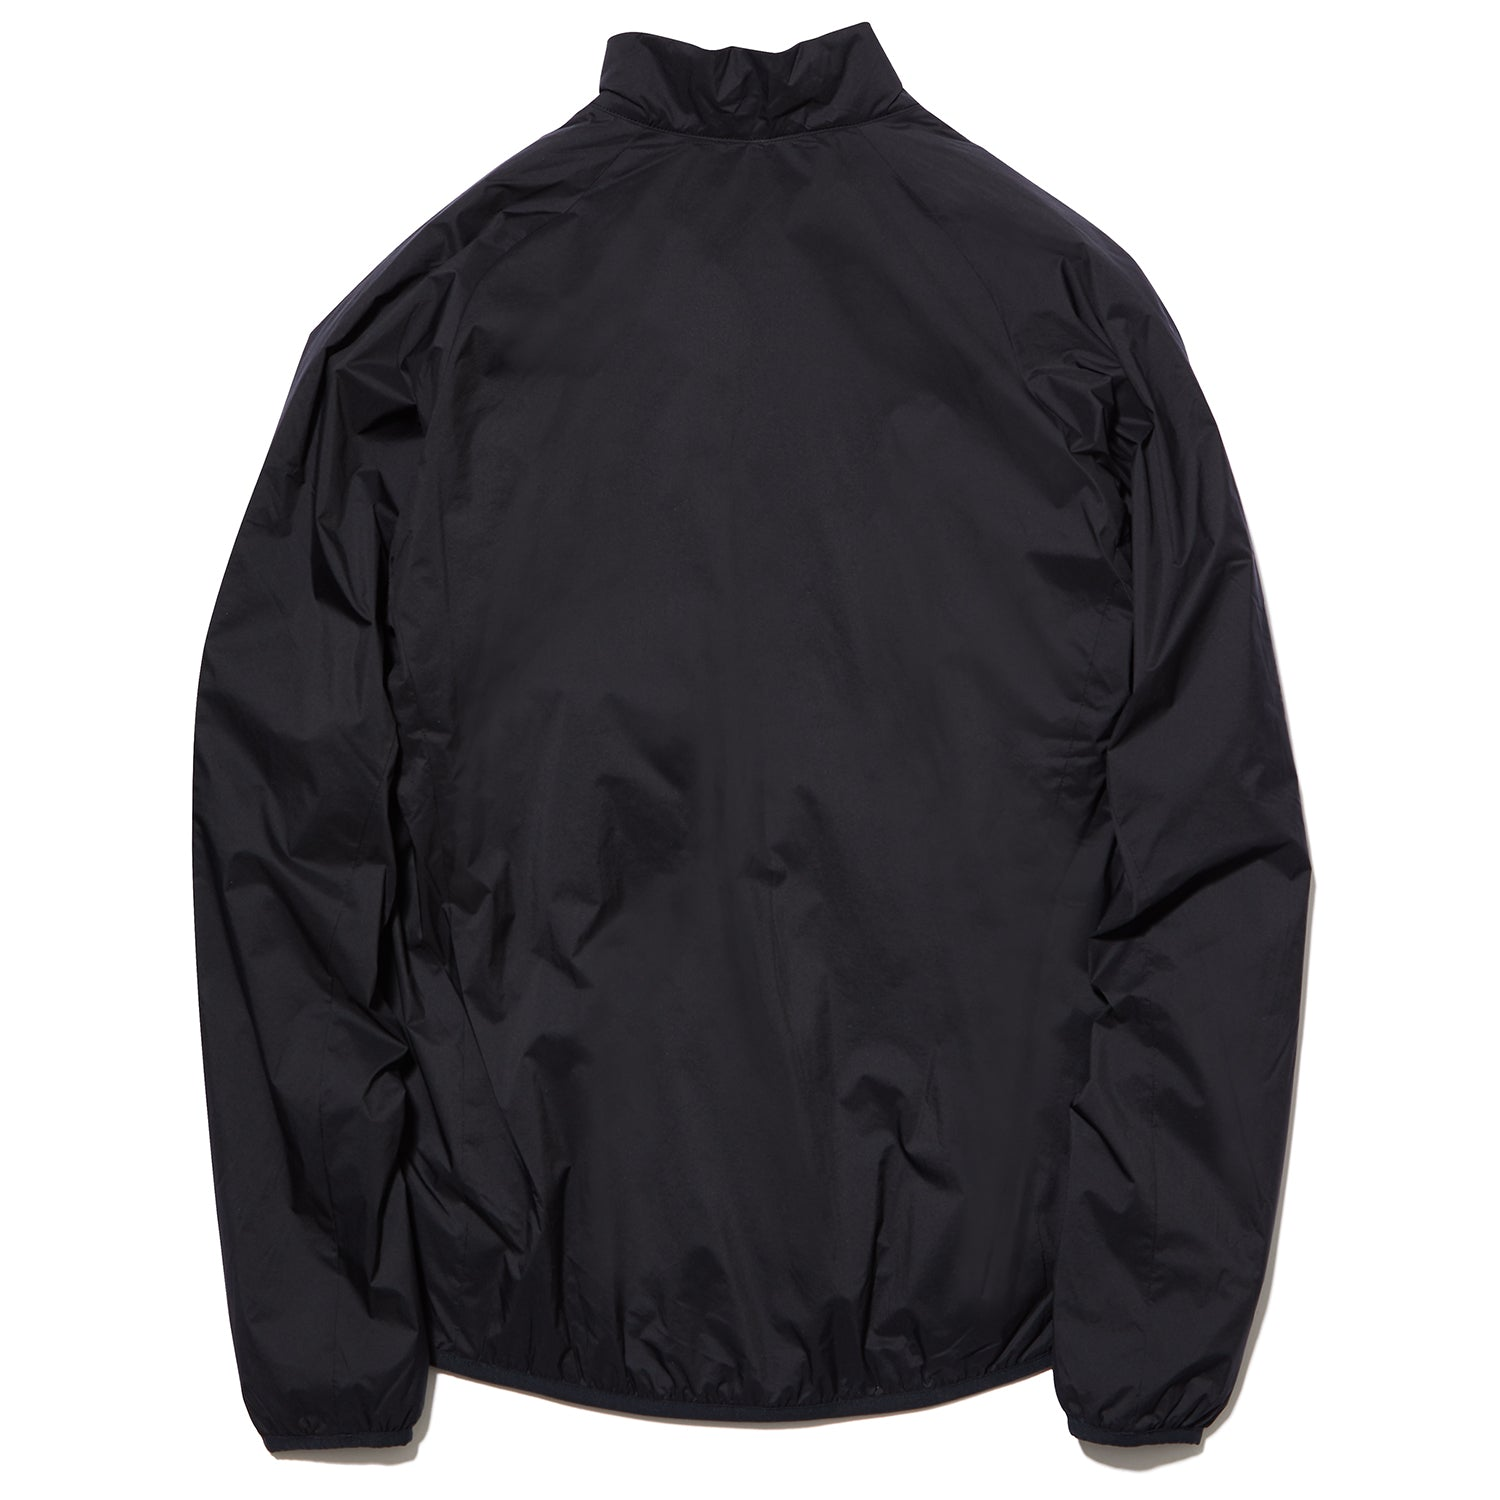 INSULATED LONG SLEEVES BLACK